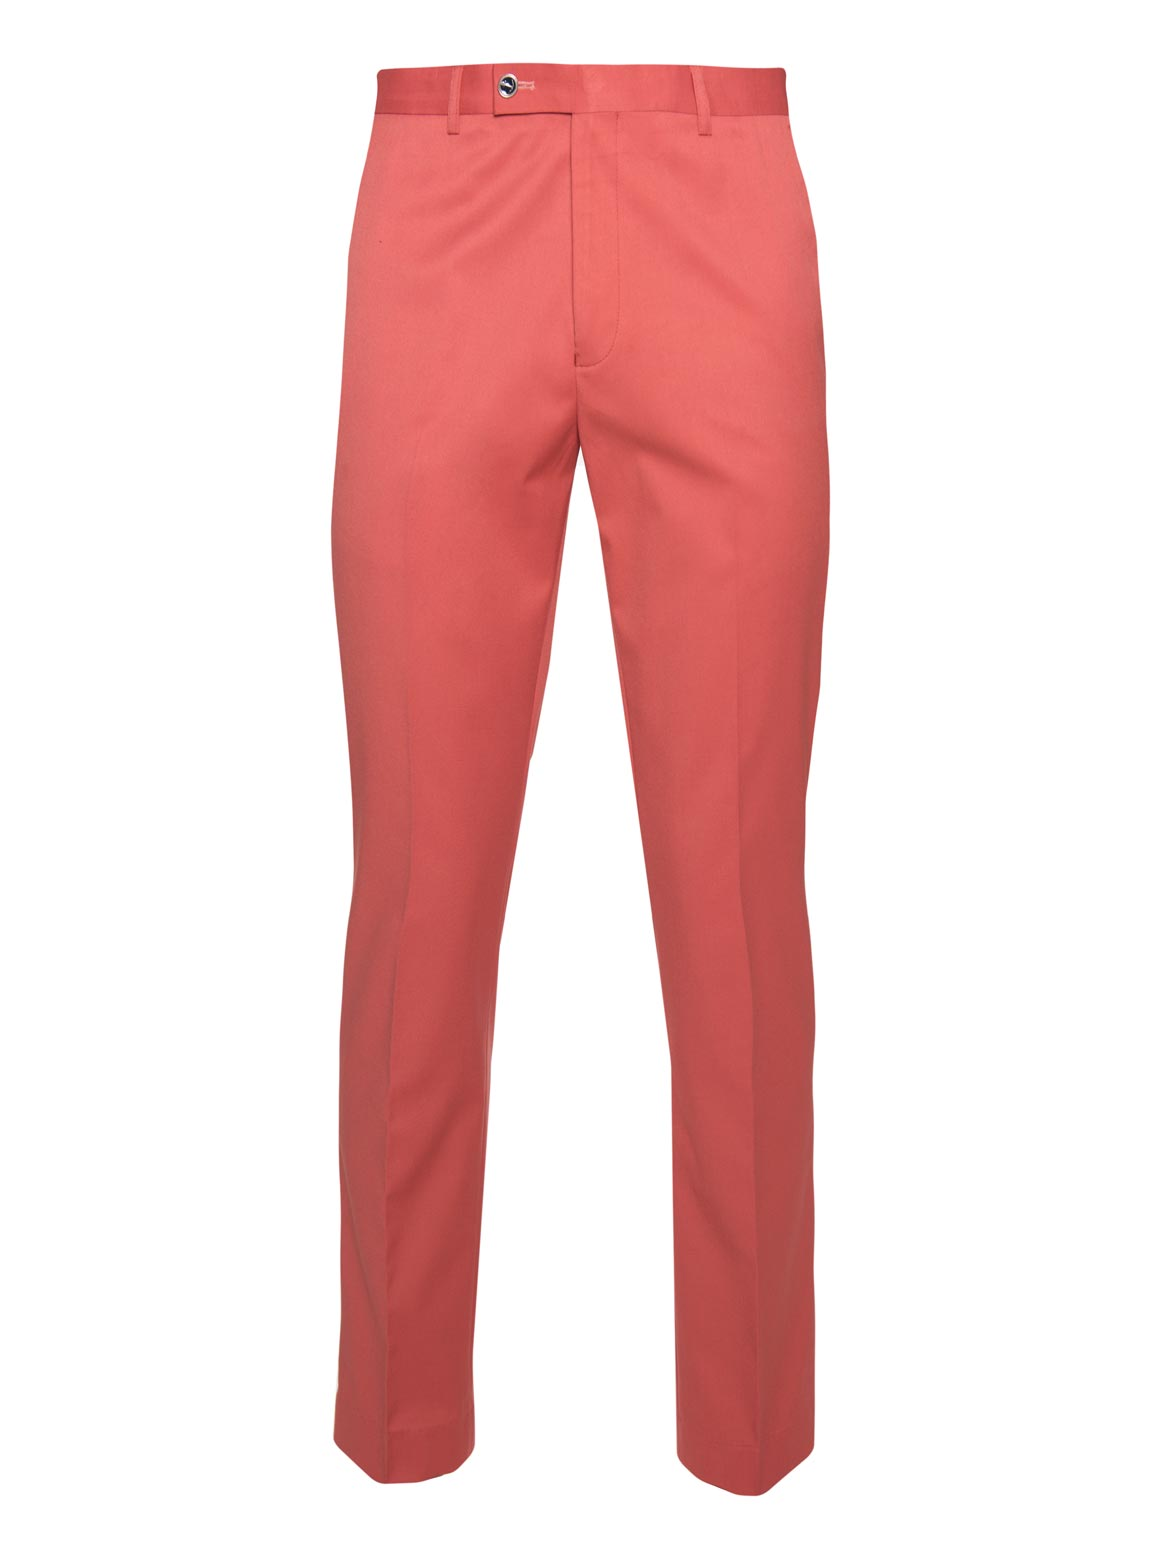 paisley & gray pink solid slim fit suit pant 2117P